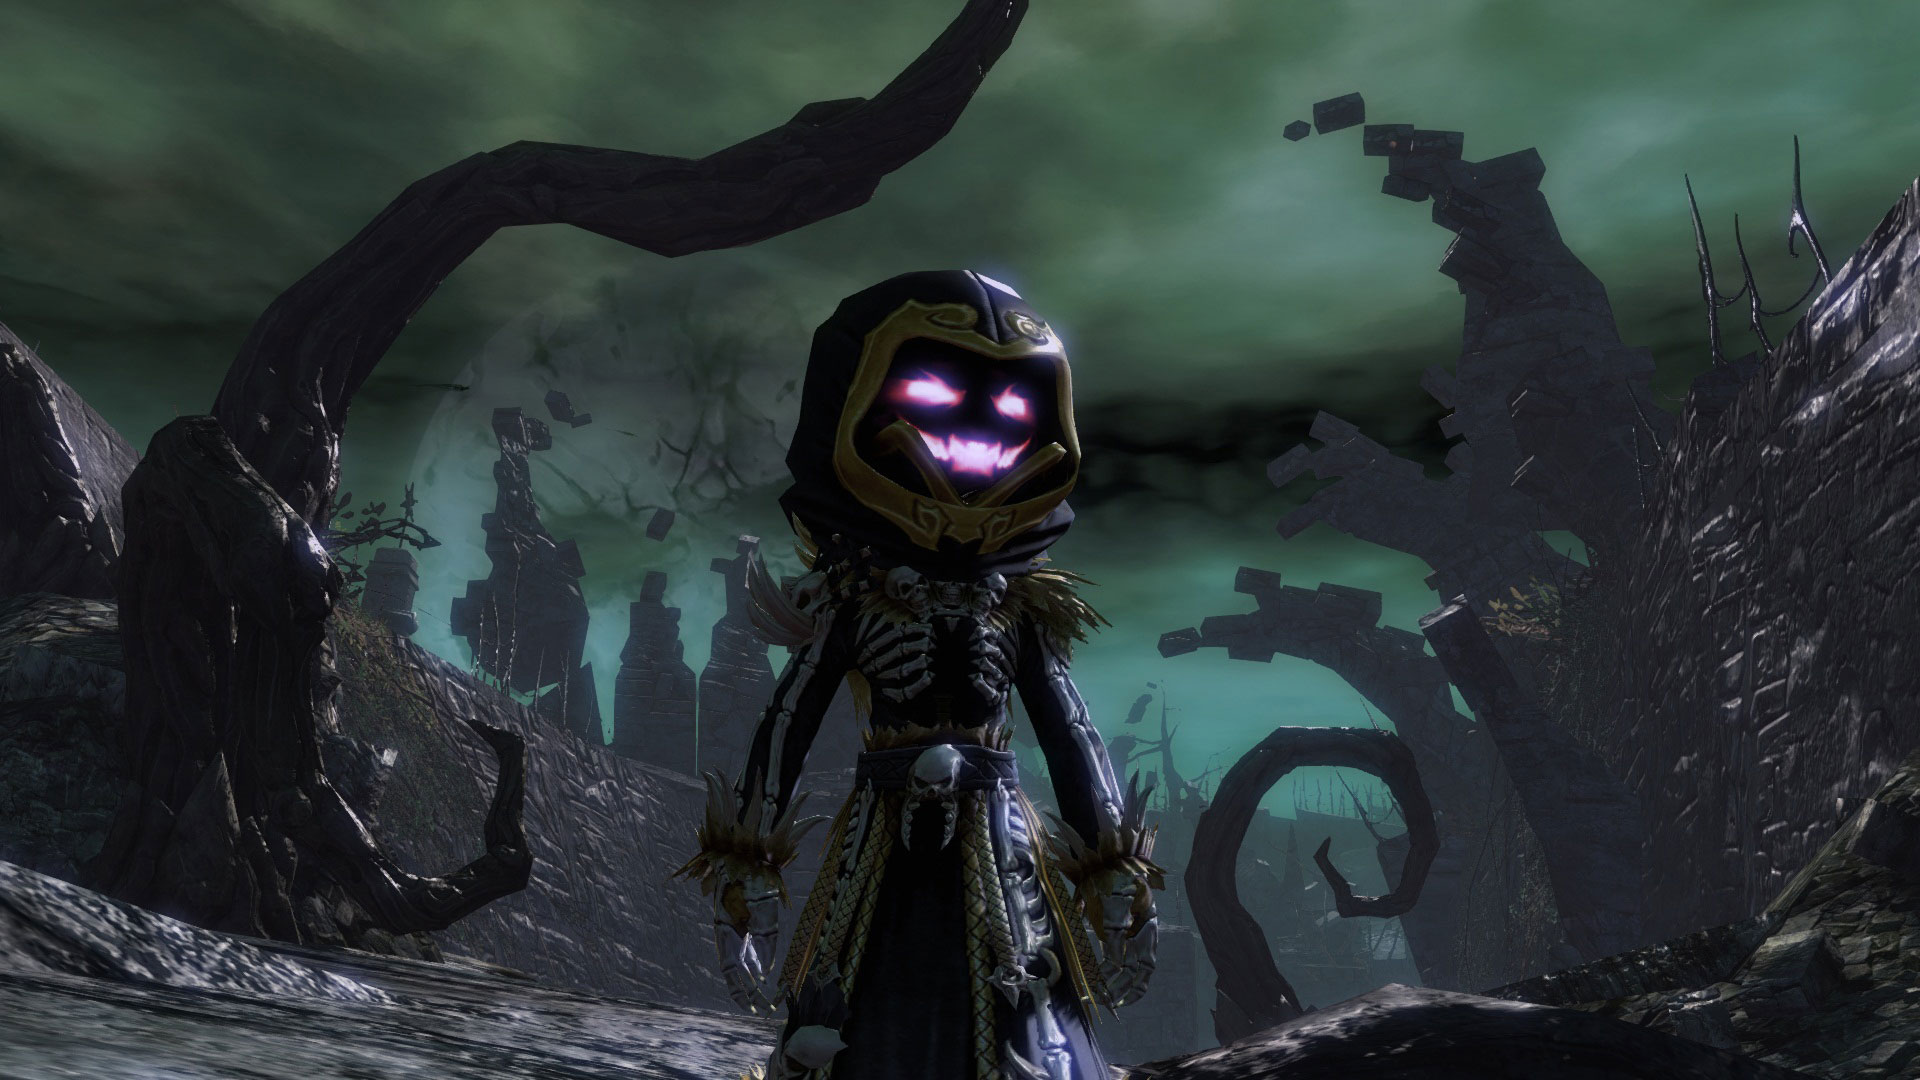 New Armors and More Available in the Gem Store! | GuildWars2.com